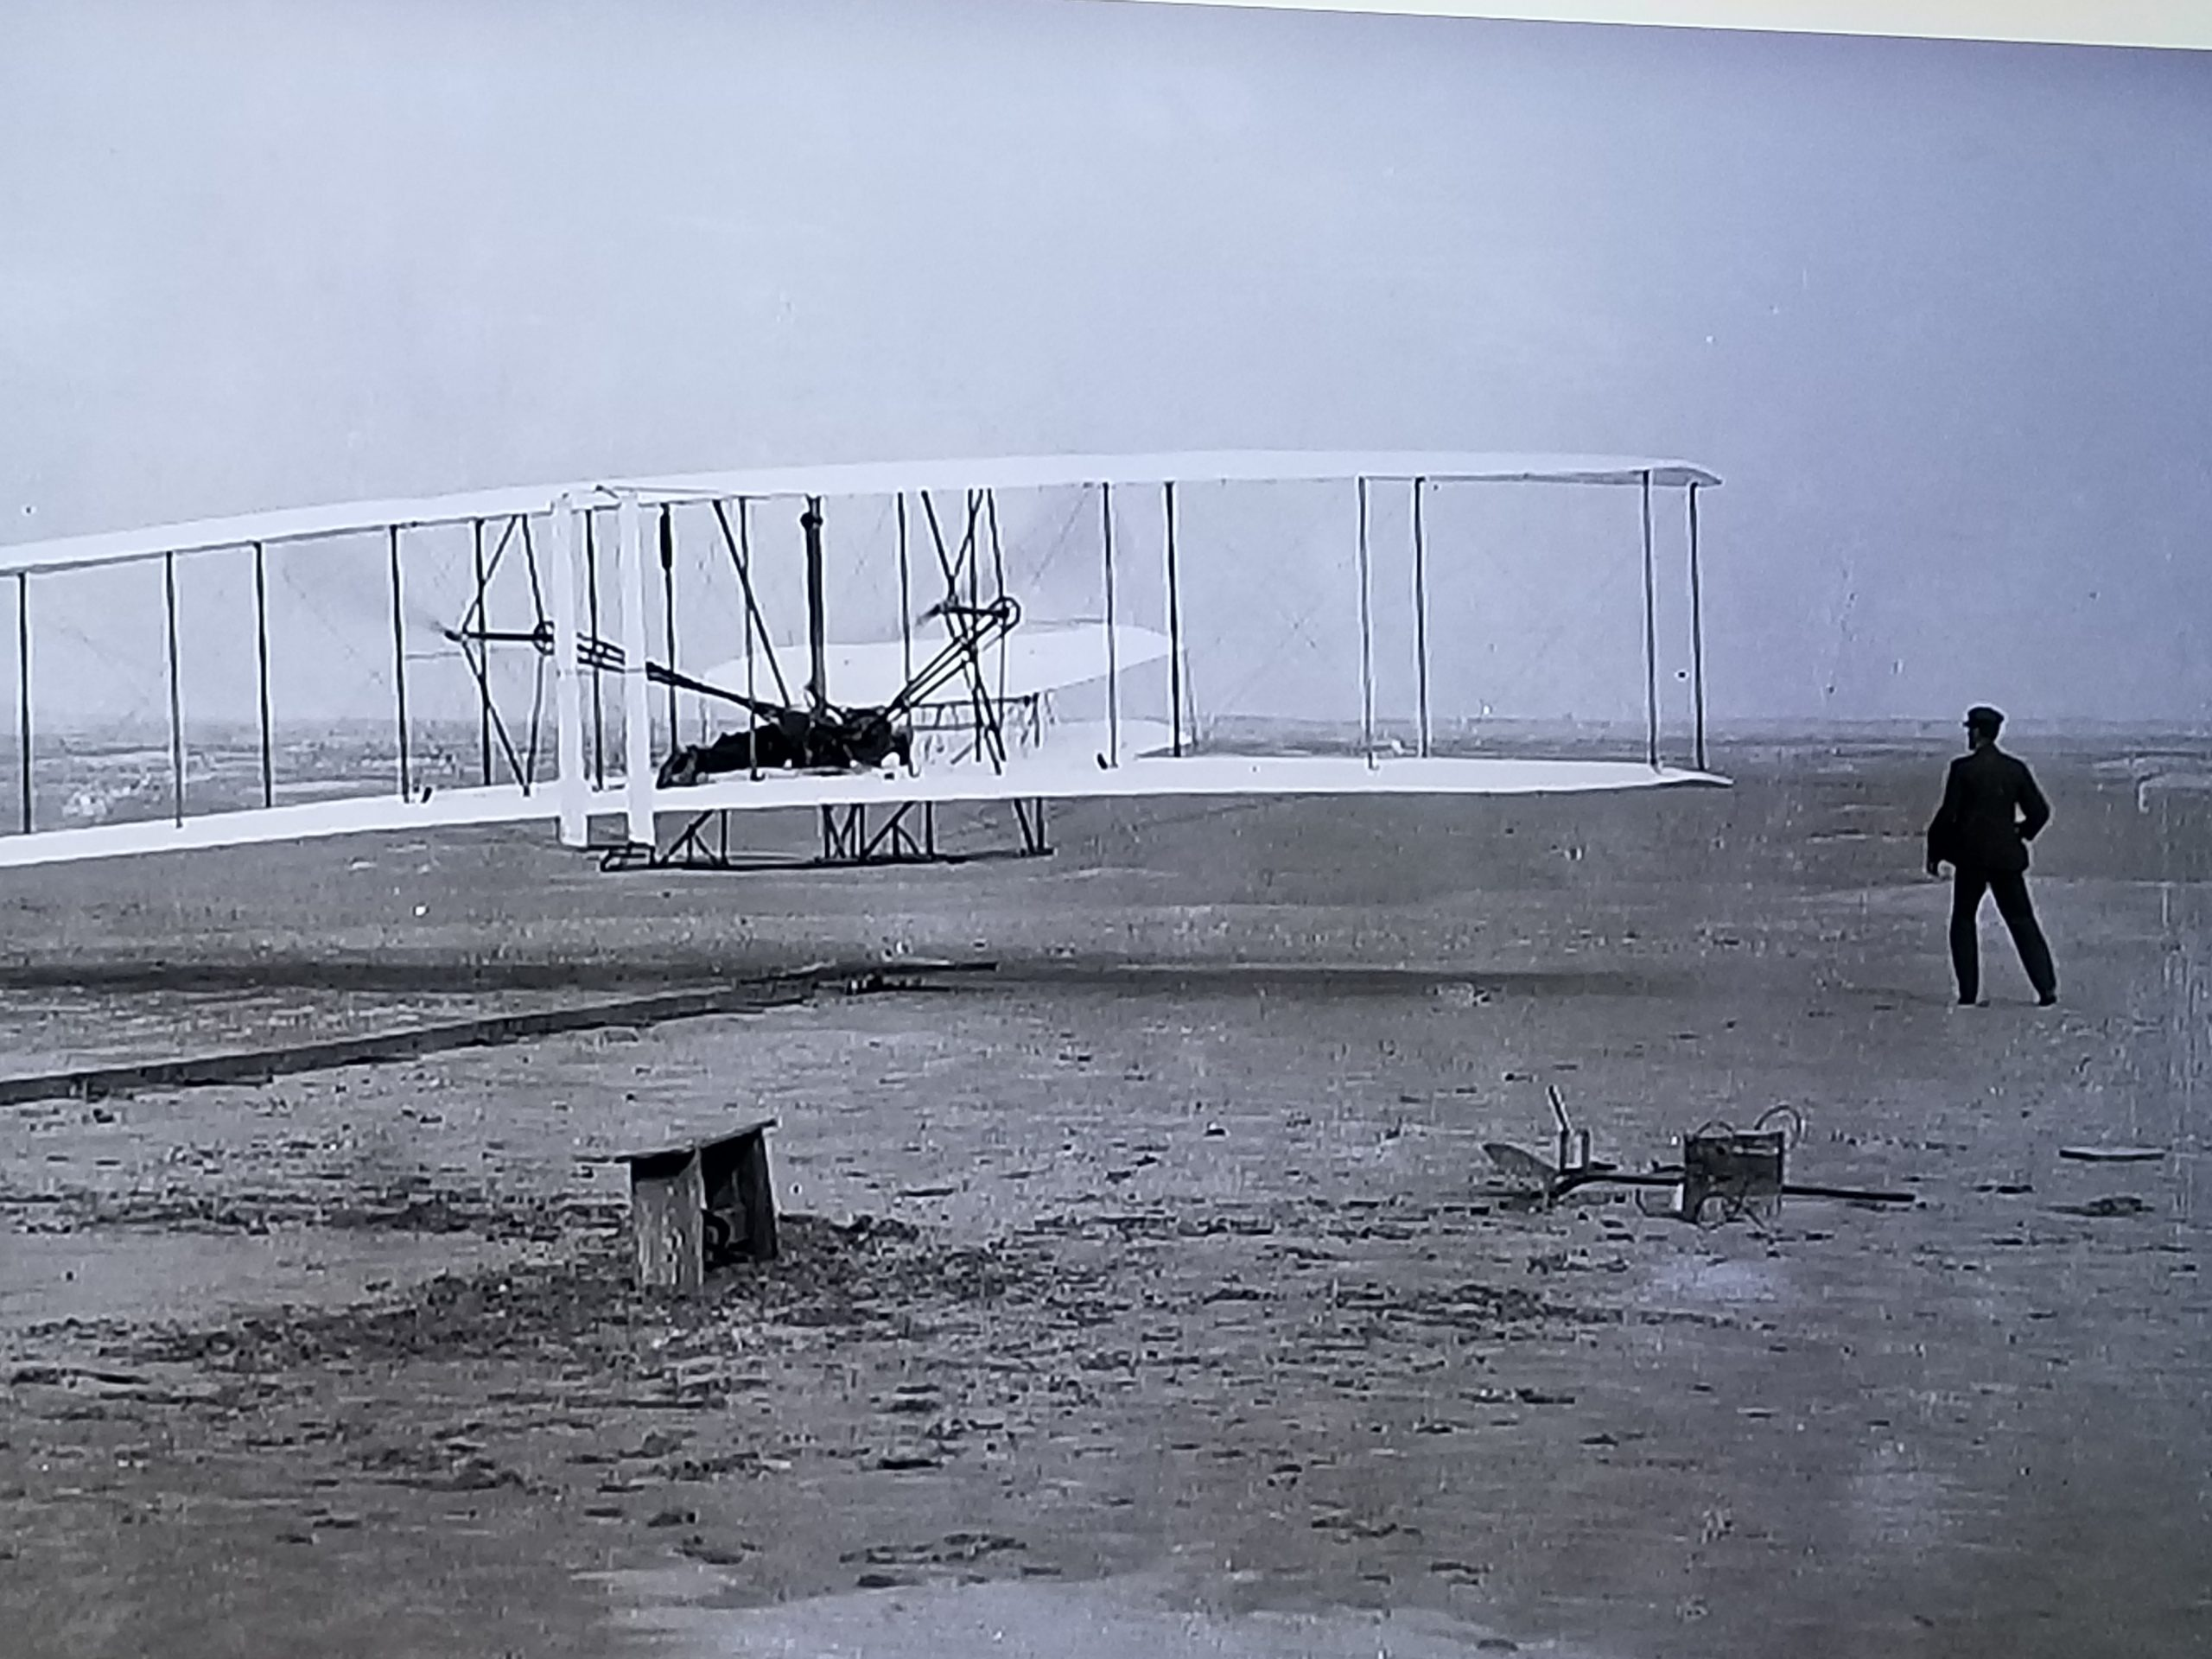 shows a picture of Wright Brothers first flight as shown on America's Summer Road Trip